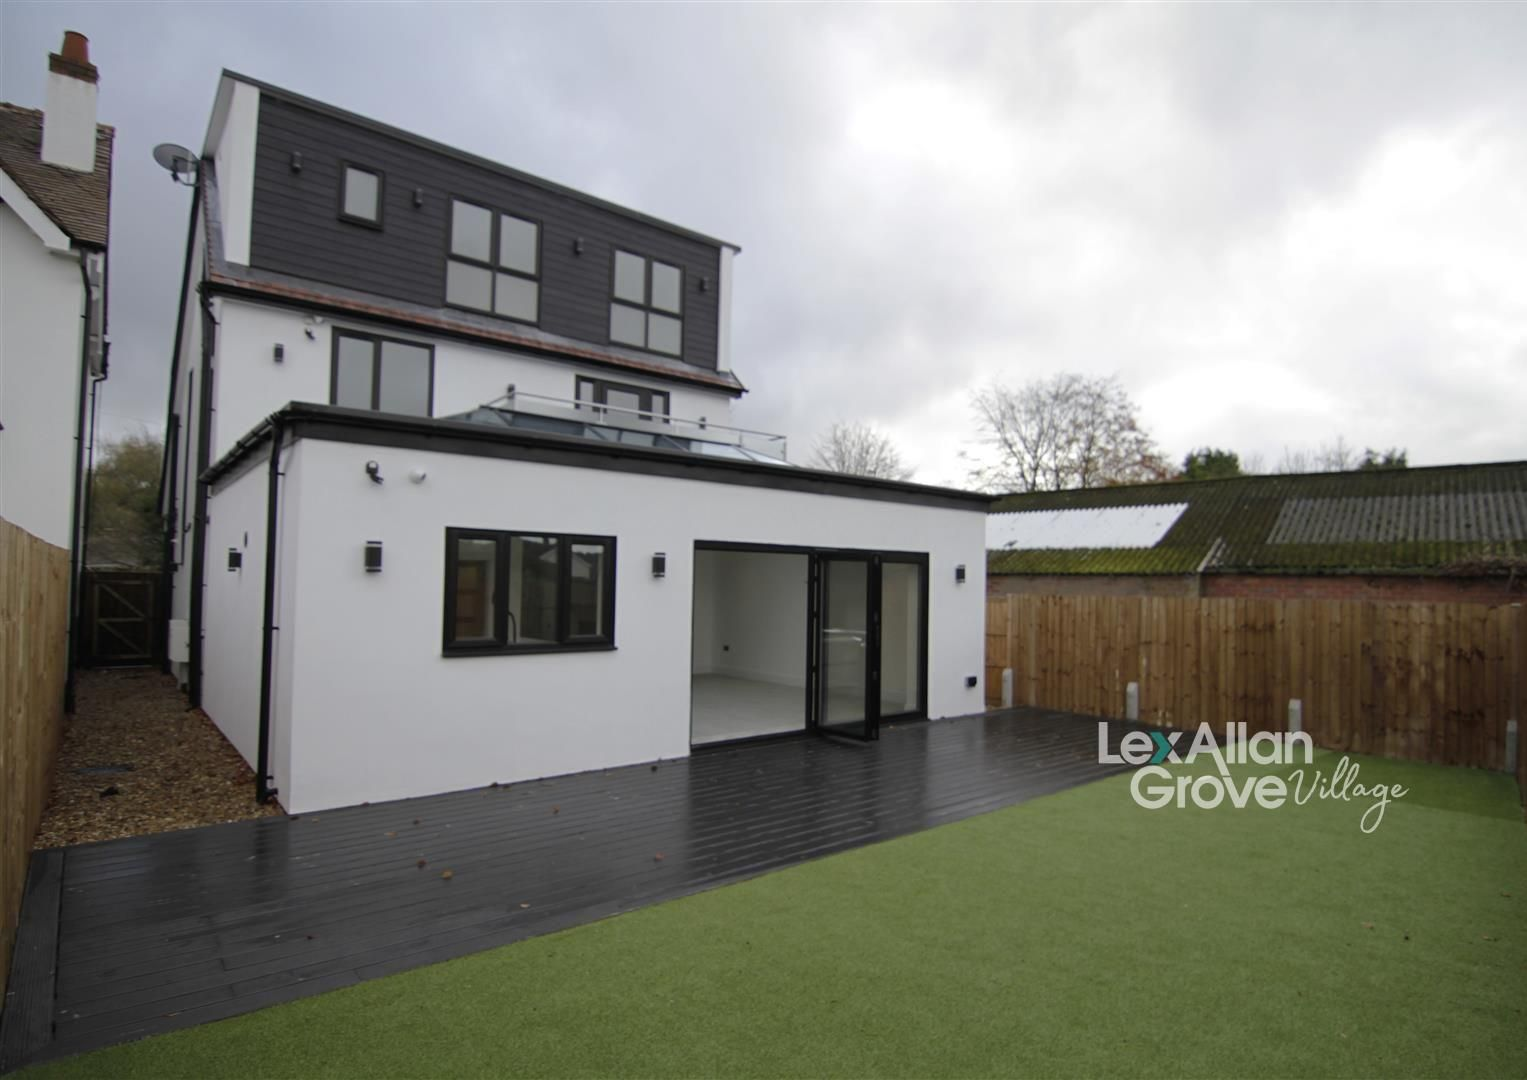 5 bed detached for sale in Hagley  - Property Image 1